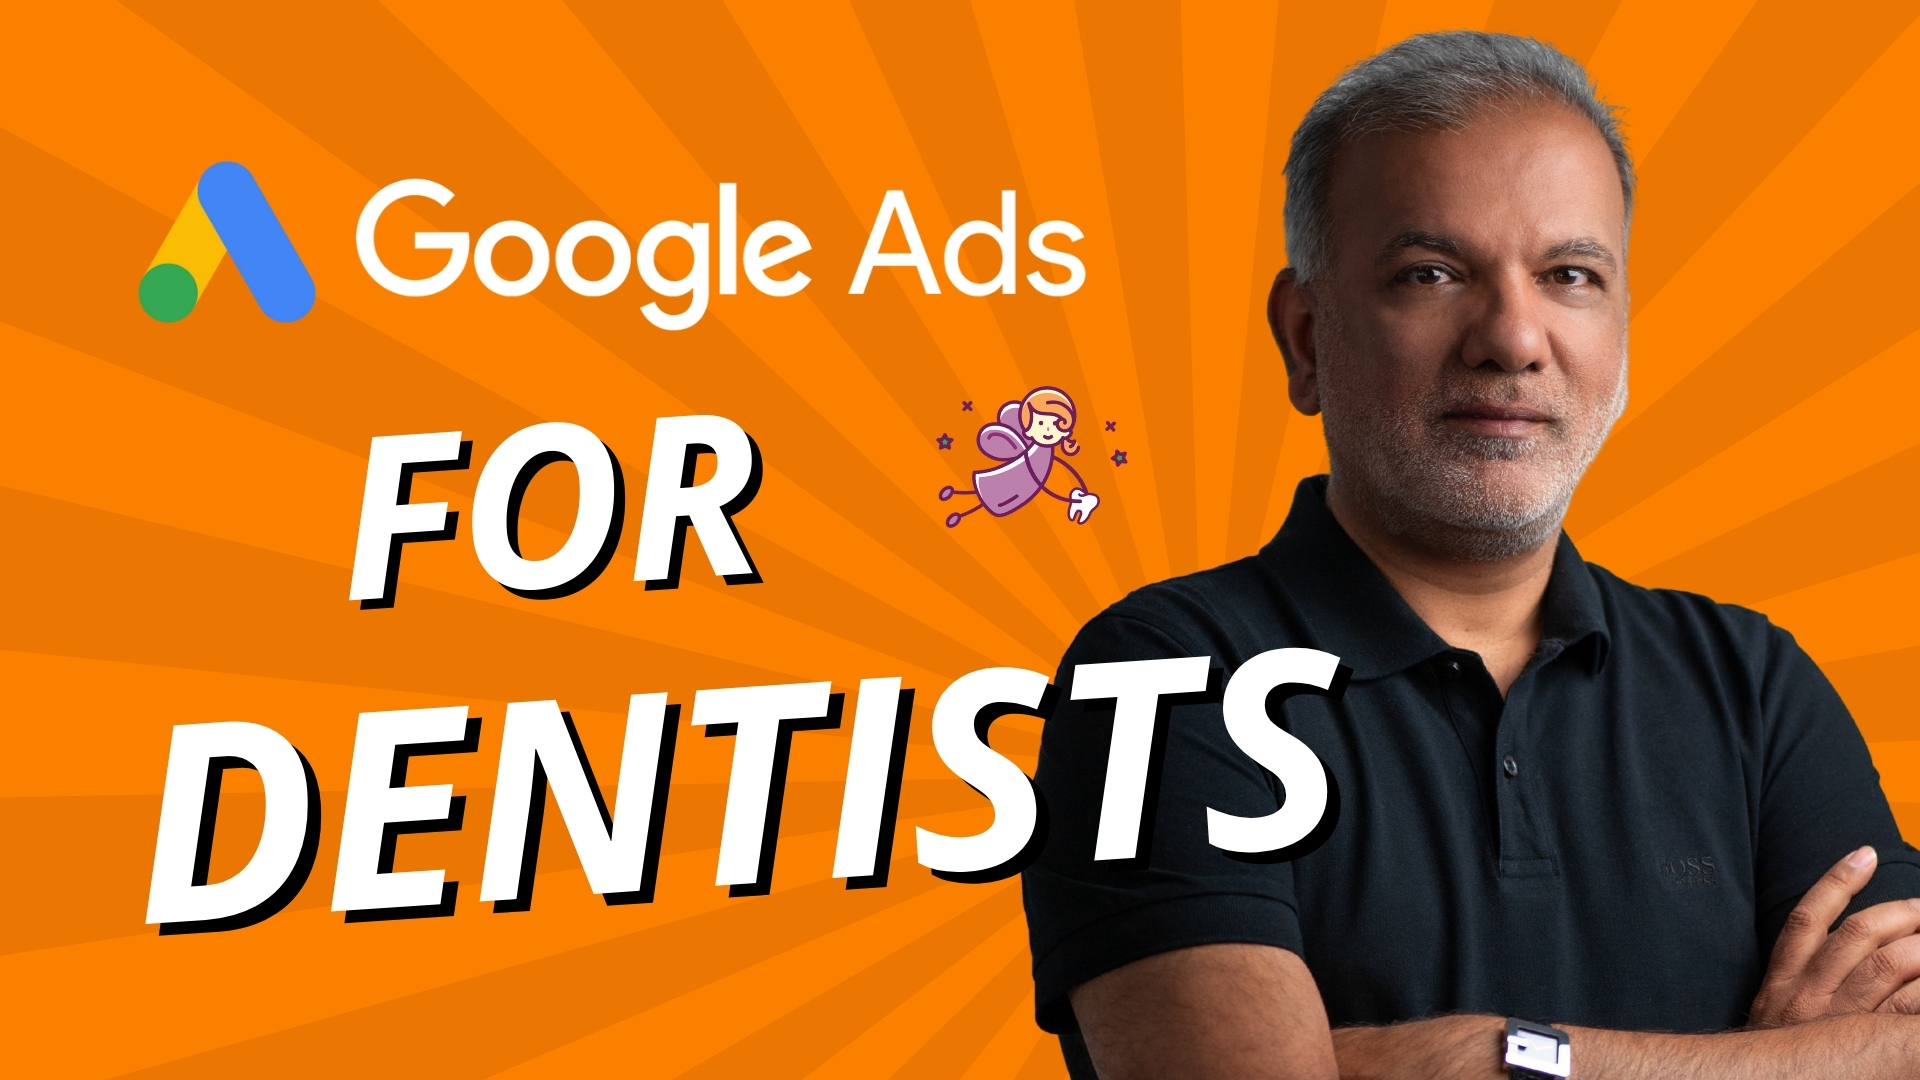 The Complete Guide To Google Ads For Dentists